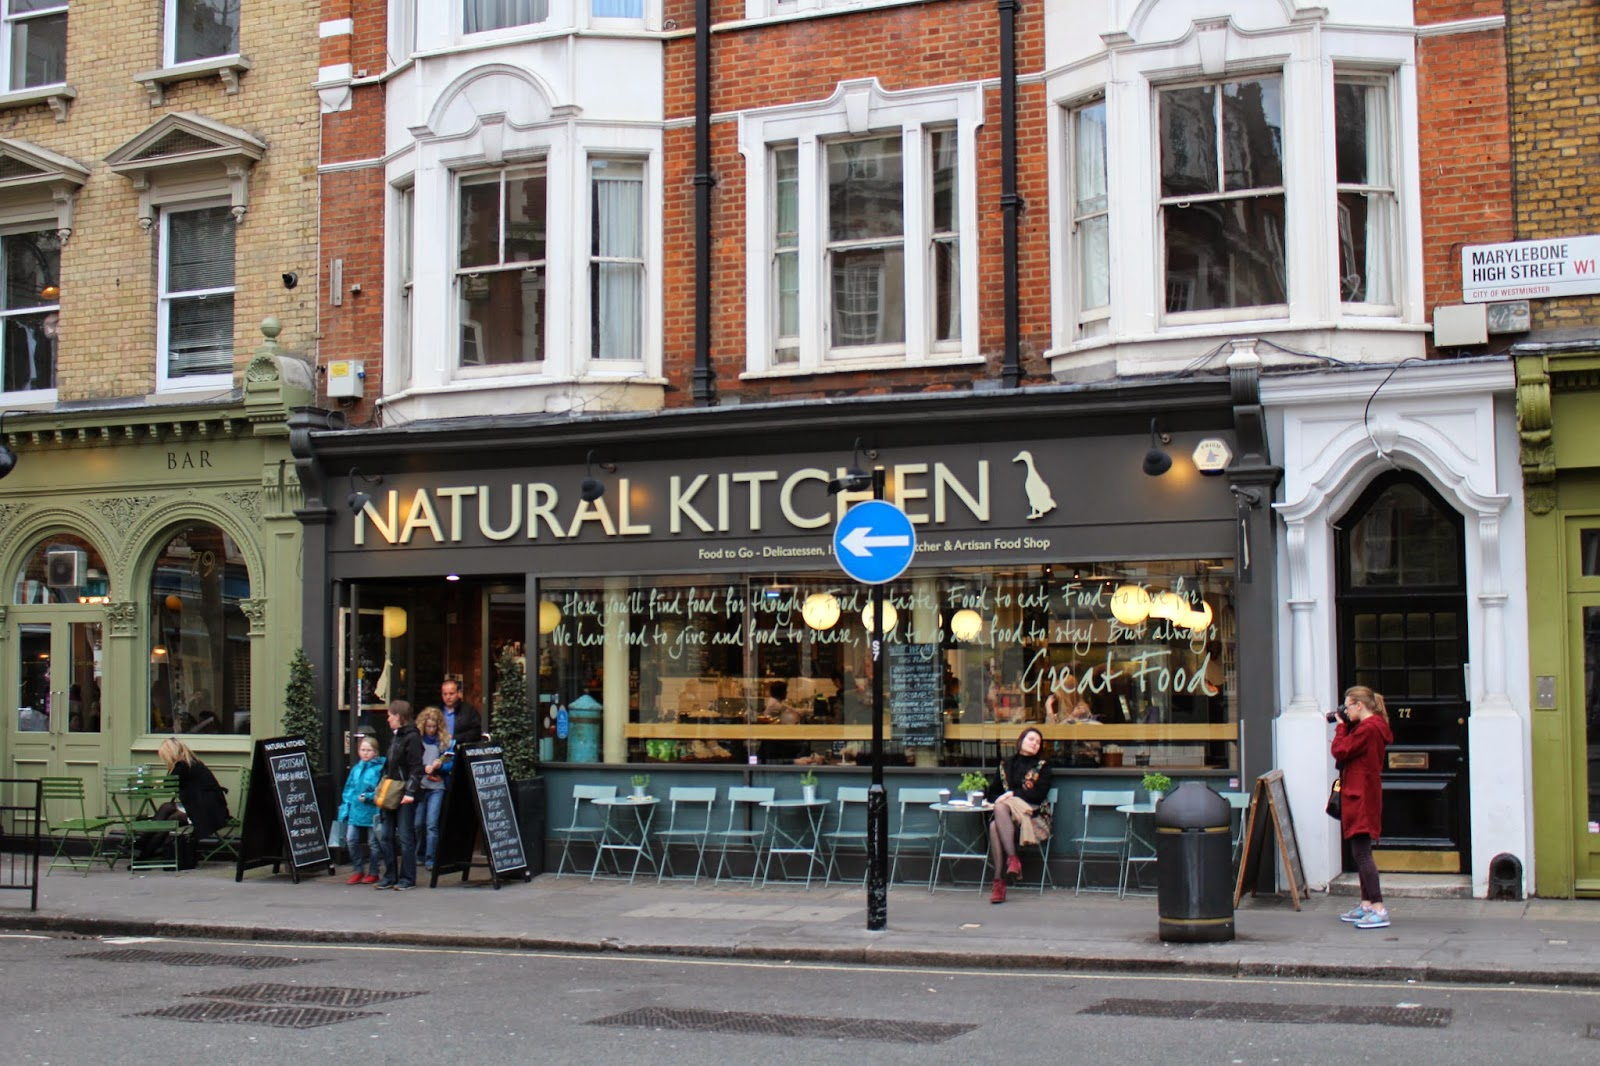 London free wifi study spots Natural Kitchen